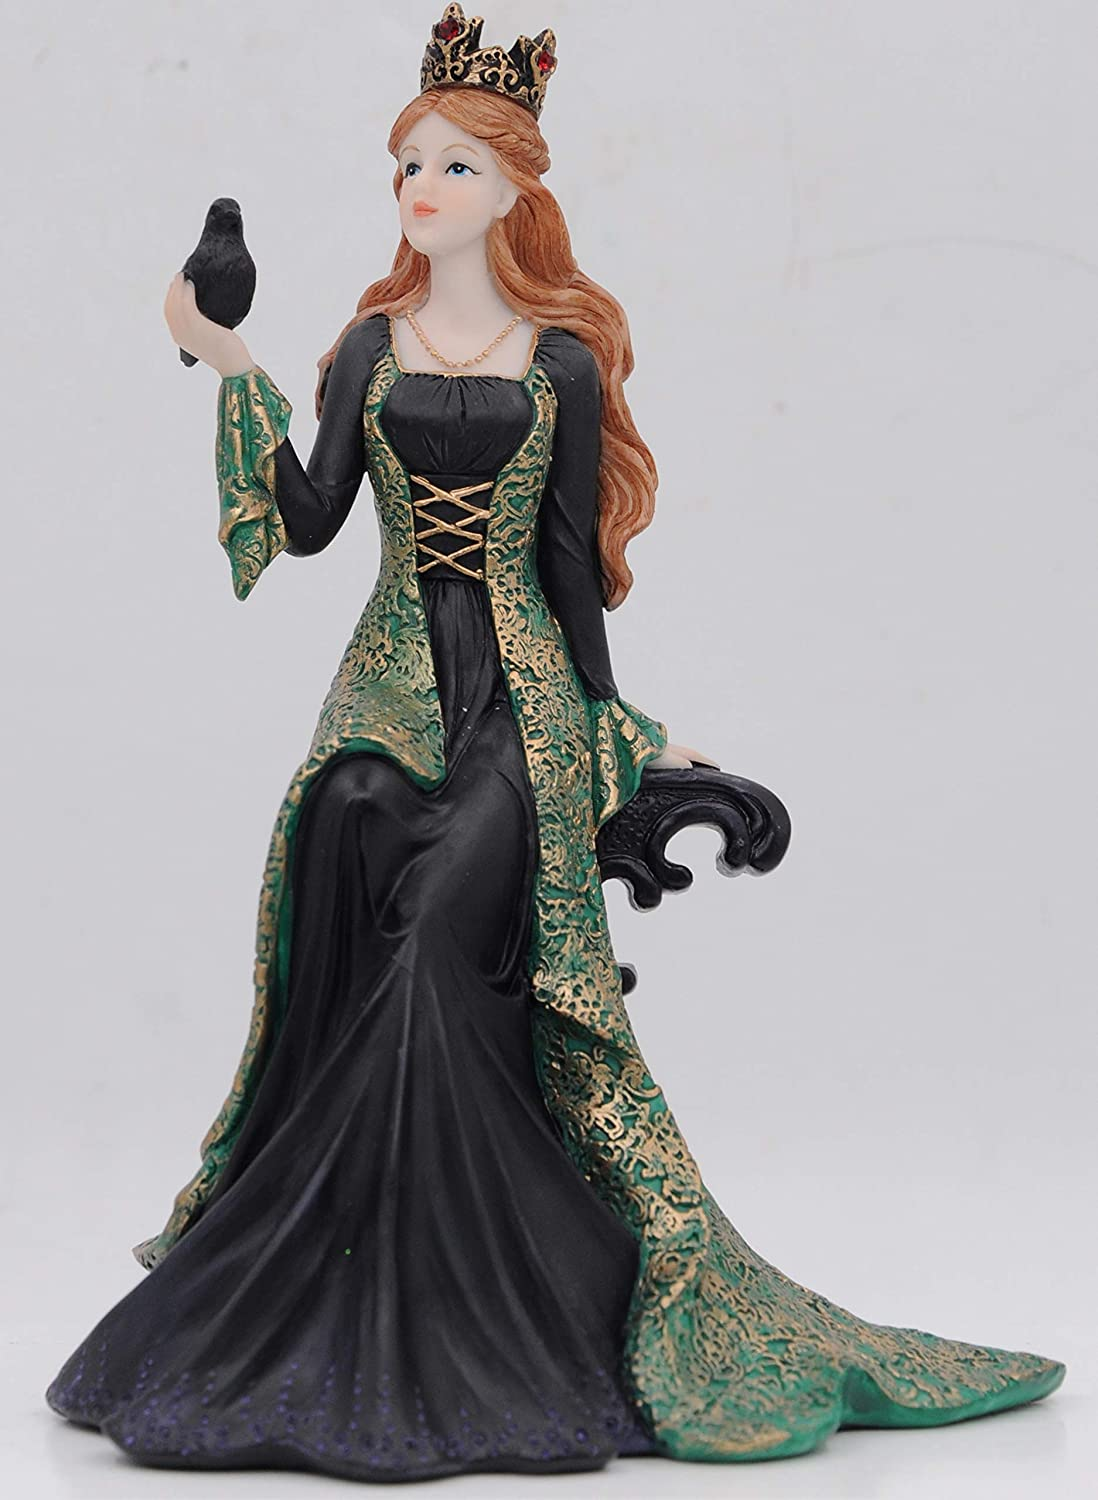 """Comfy Hour 7"""" Irish Princess Queen Green Dress with Crow Resin Figurine for St. Patrick's Day and Everyday Collection"""